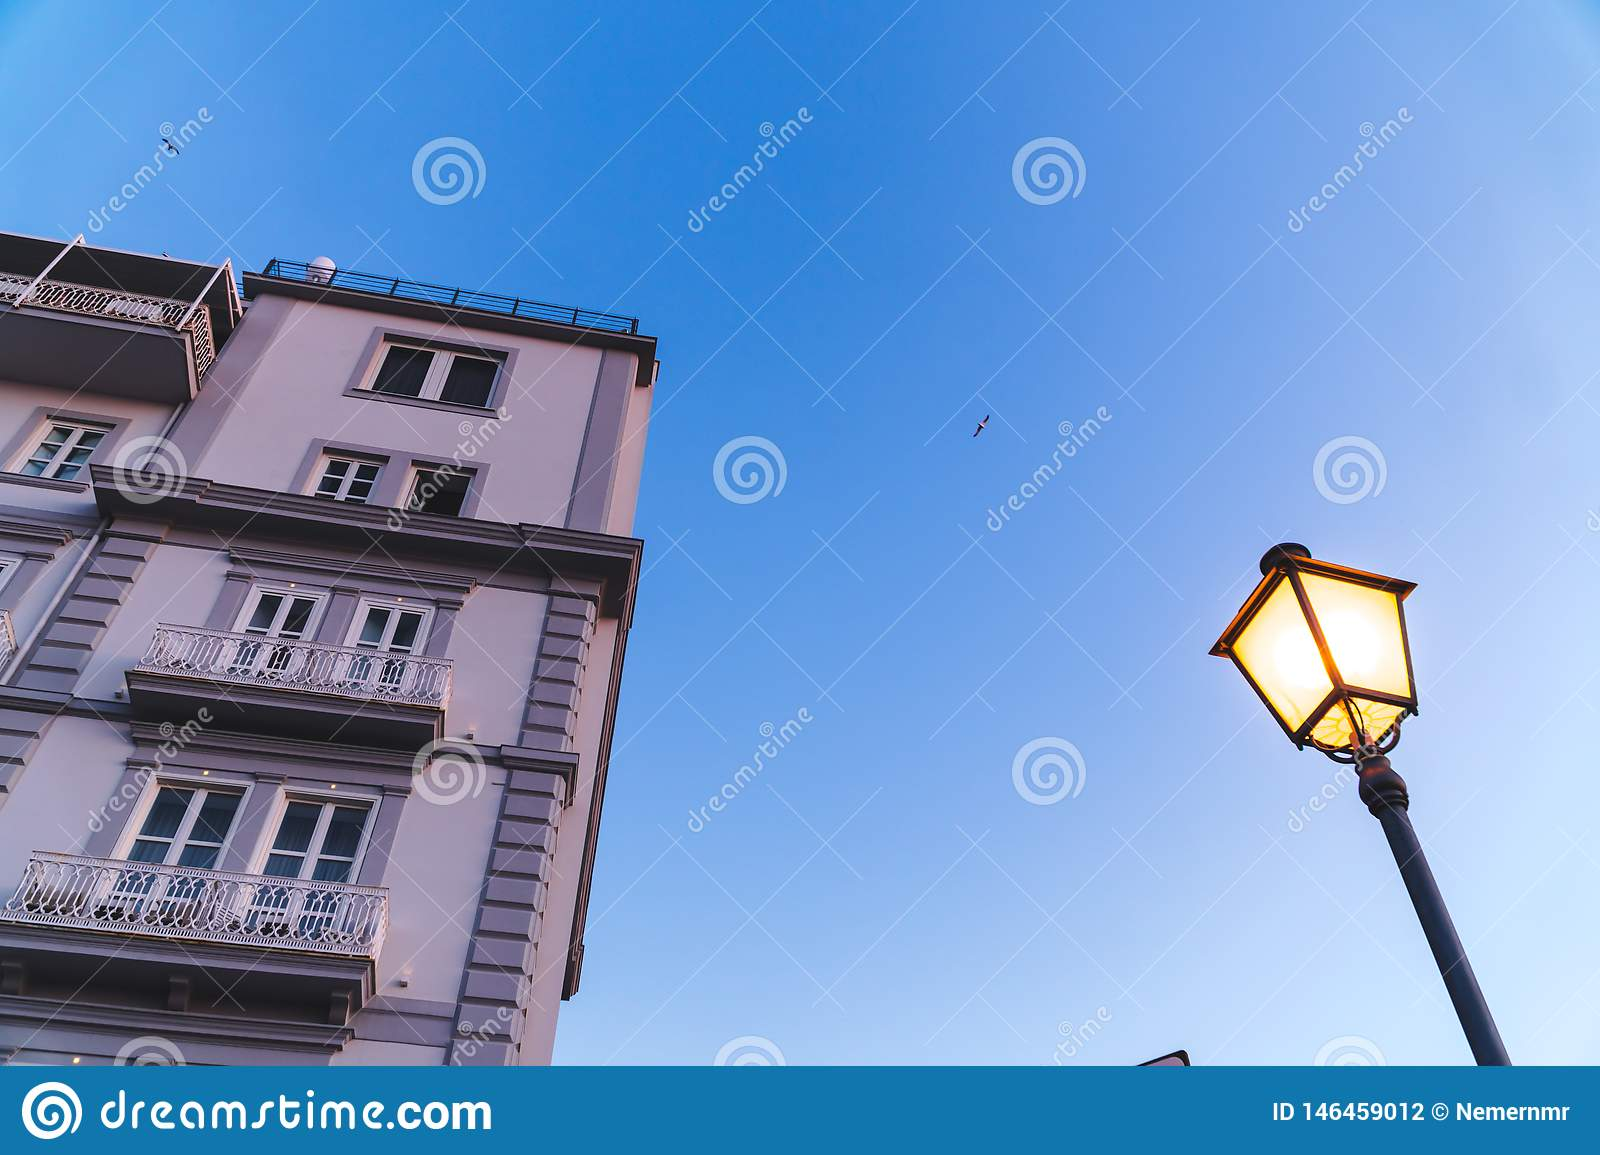 Old Italian apartment buildings on a sunset with a blue sky and street lamp. Facade of apartment building, hotels, hostels